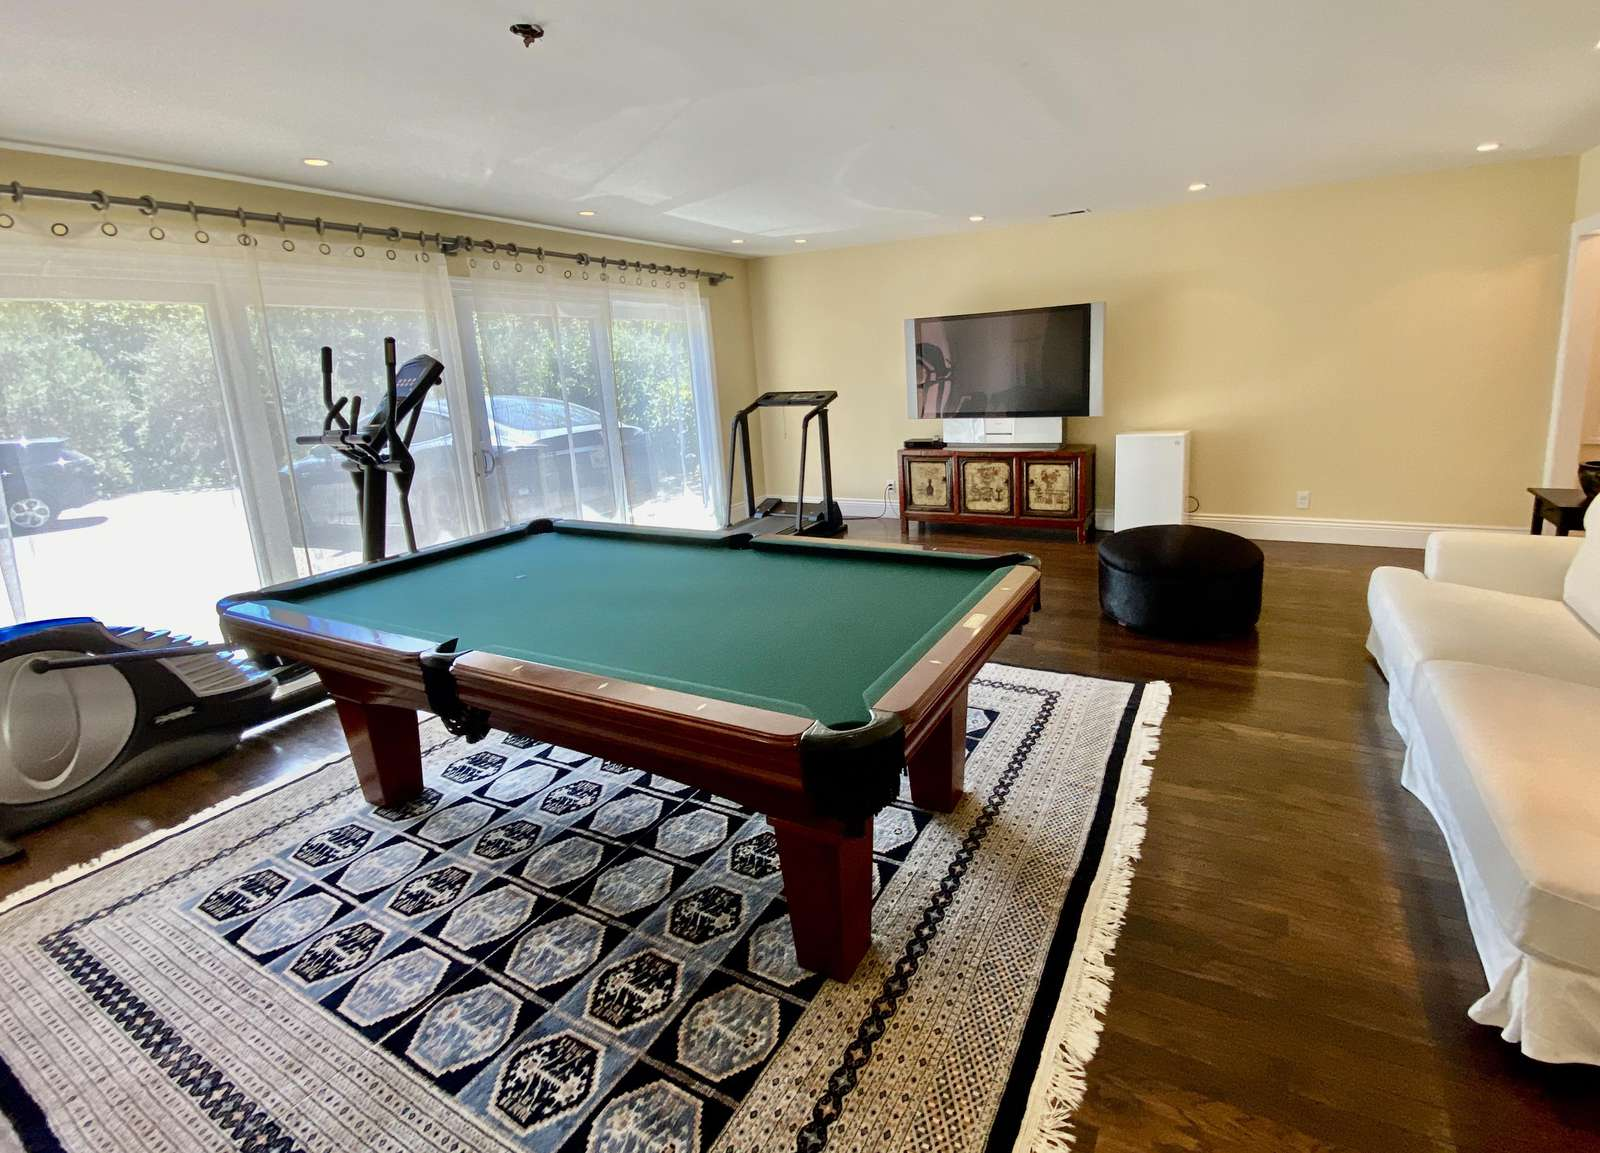 Lower level game room w/ pool table, large TV and exercise equipment